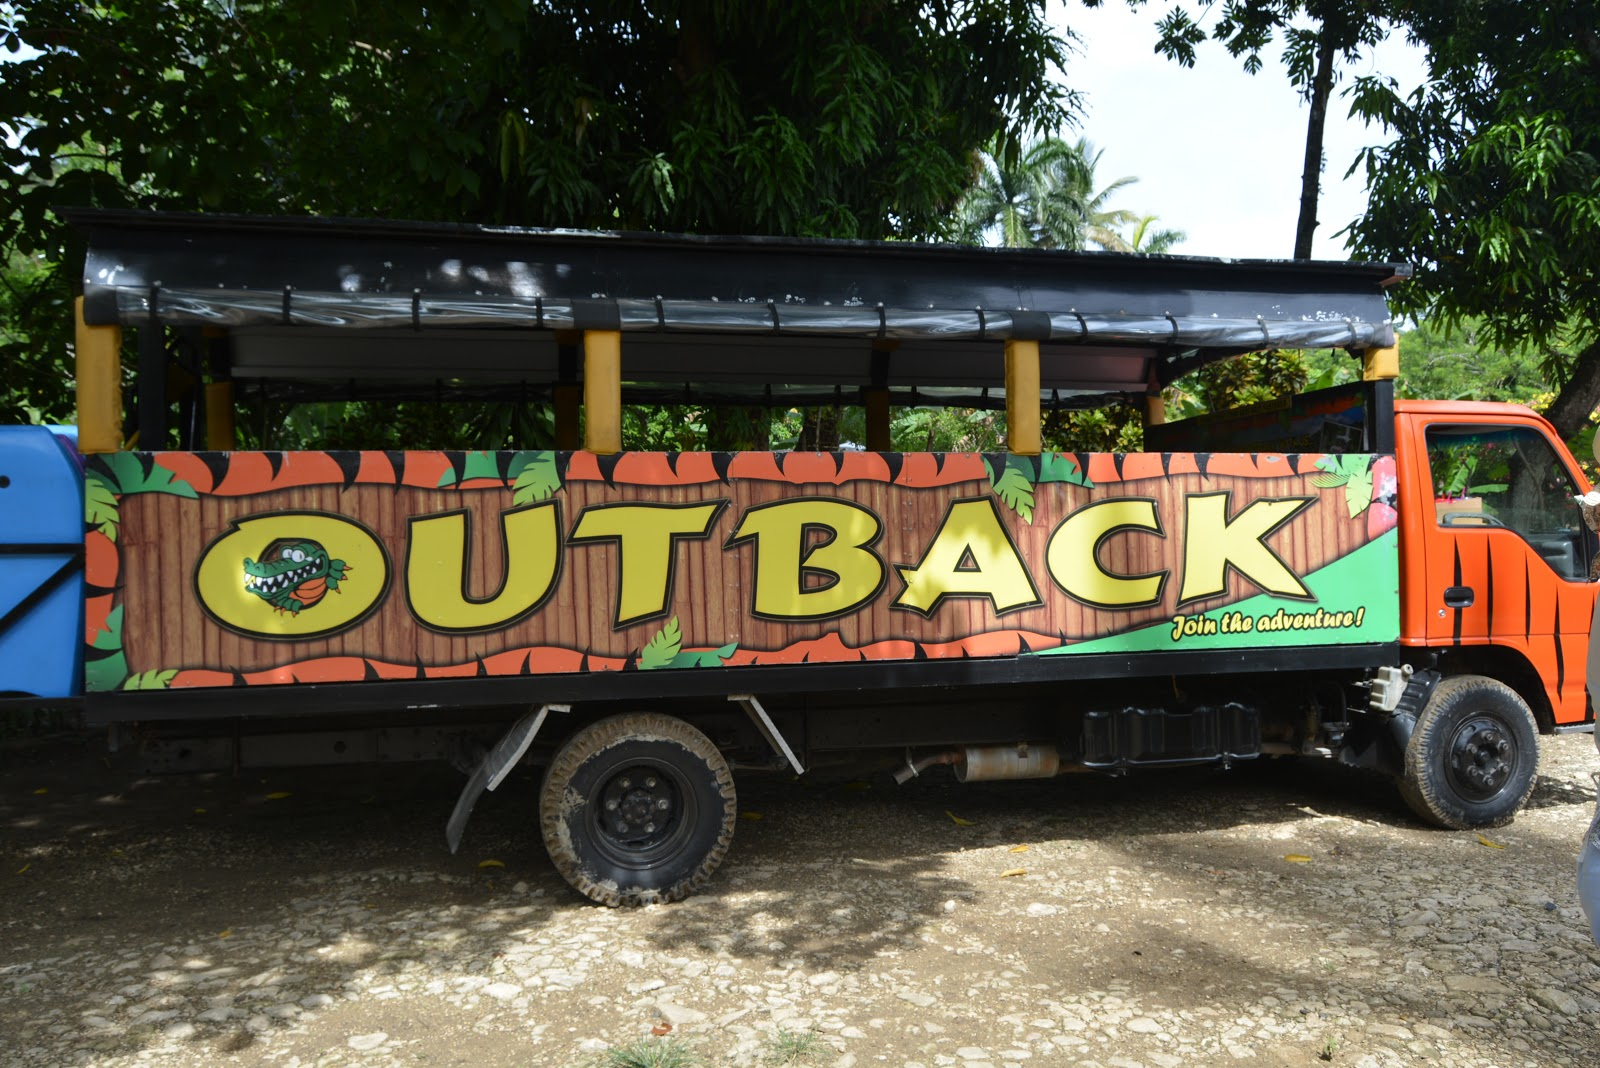 outback safari, holiday, dominican republic, travel, blogger, puerto plata, excursion, amber cove, caribbean